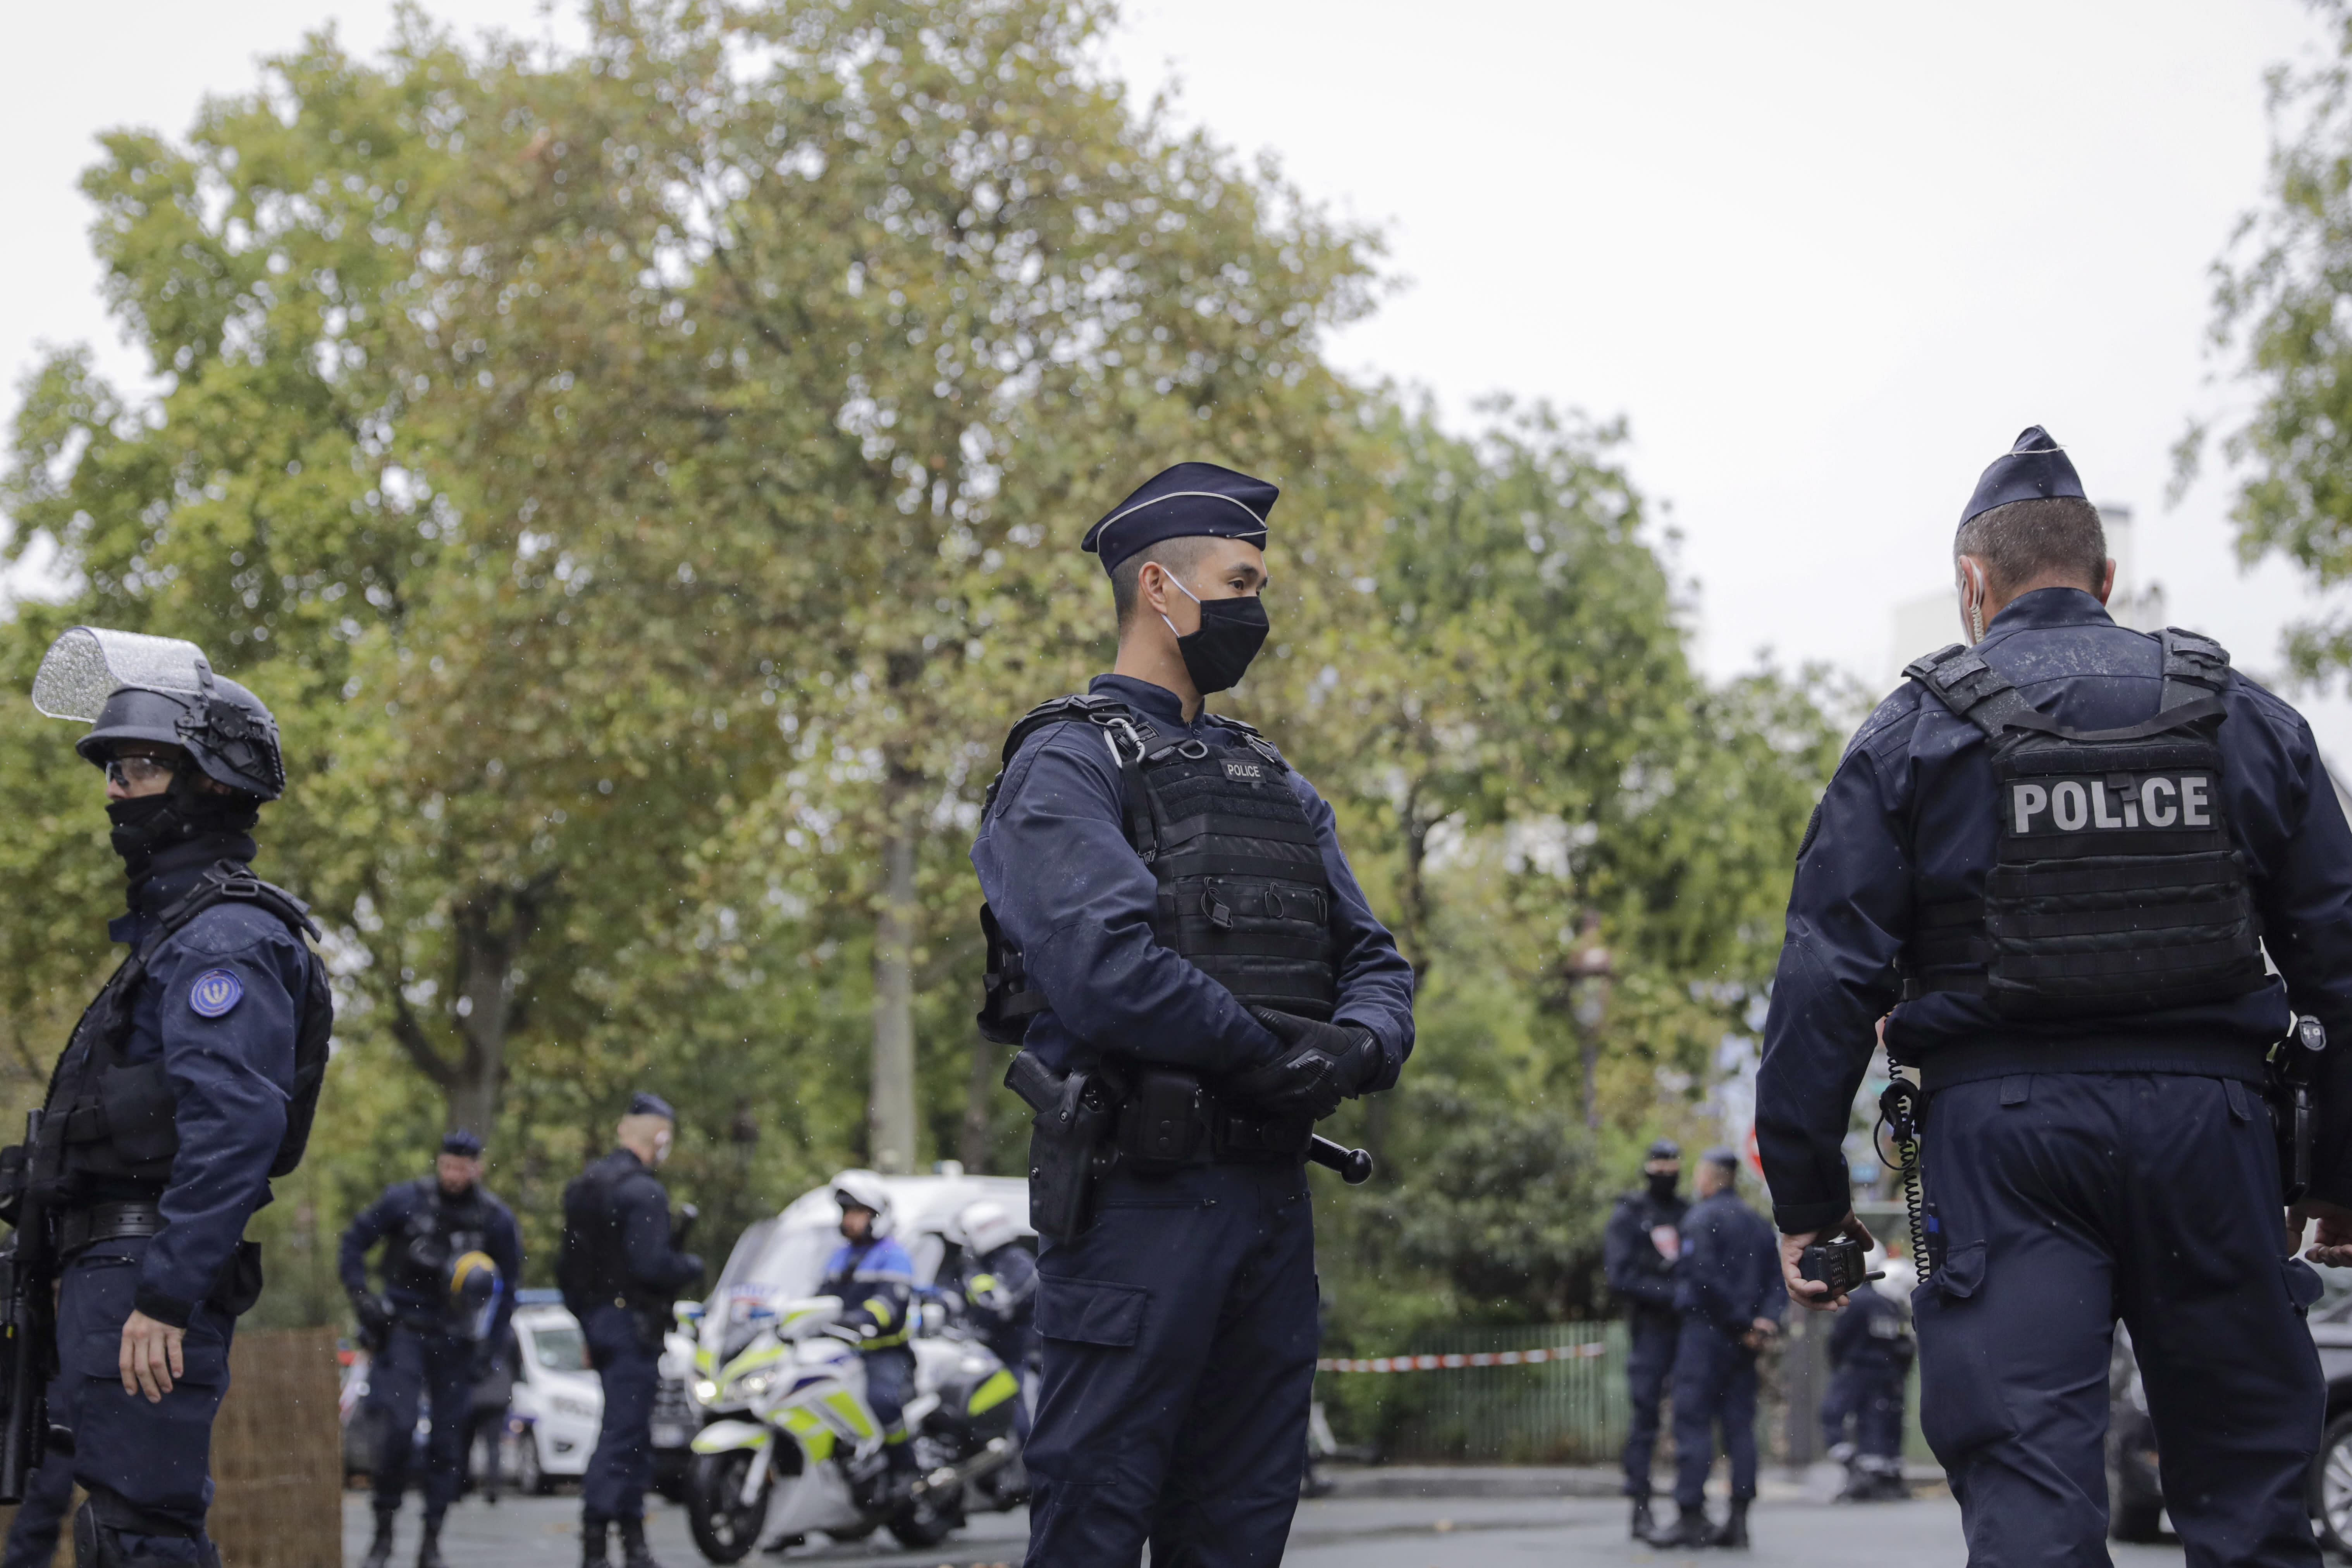 Terror probe opened after Paris knife attack wounds 2